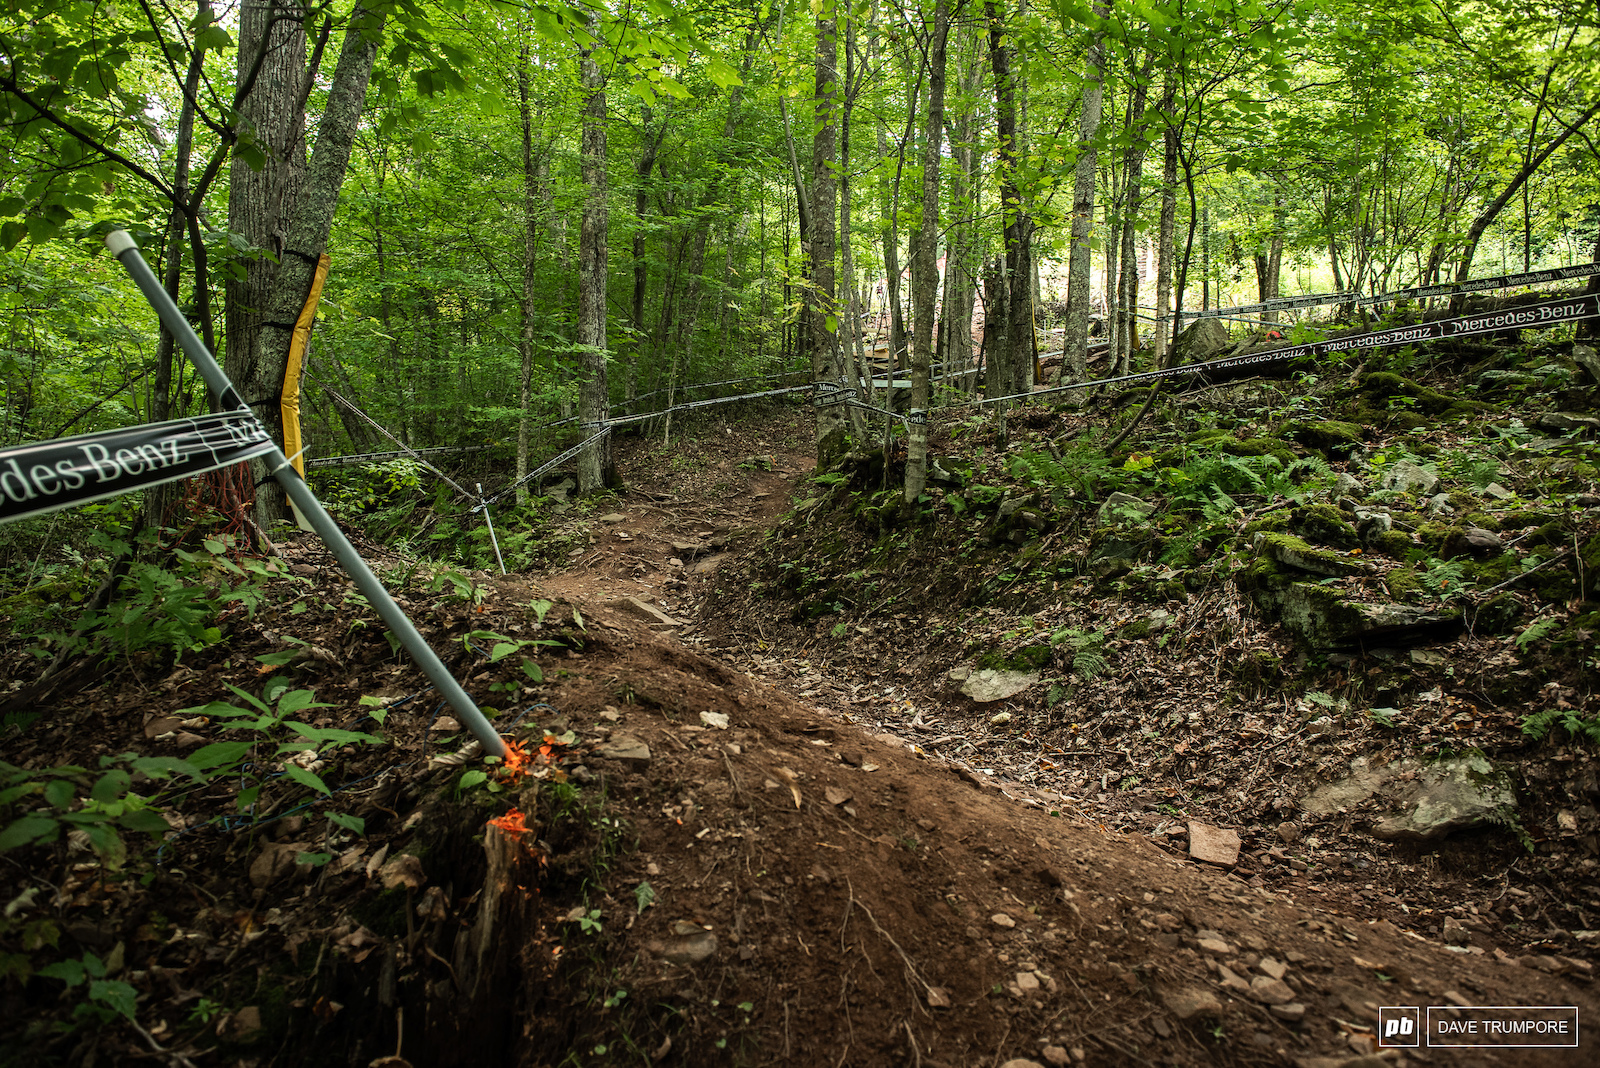 A steep chute and a clever little bench cut to slow riders and force them to change direction. Lots subtle little trails building details are evident on this track.